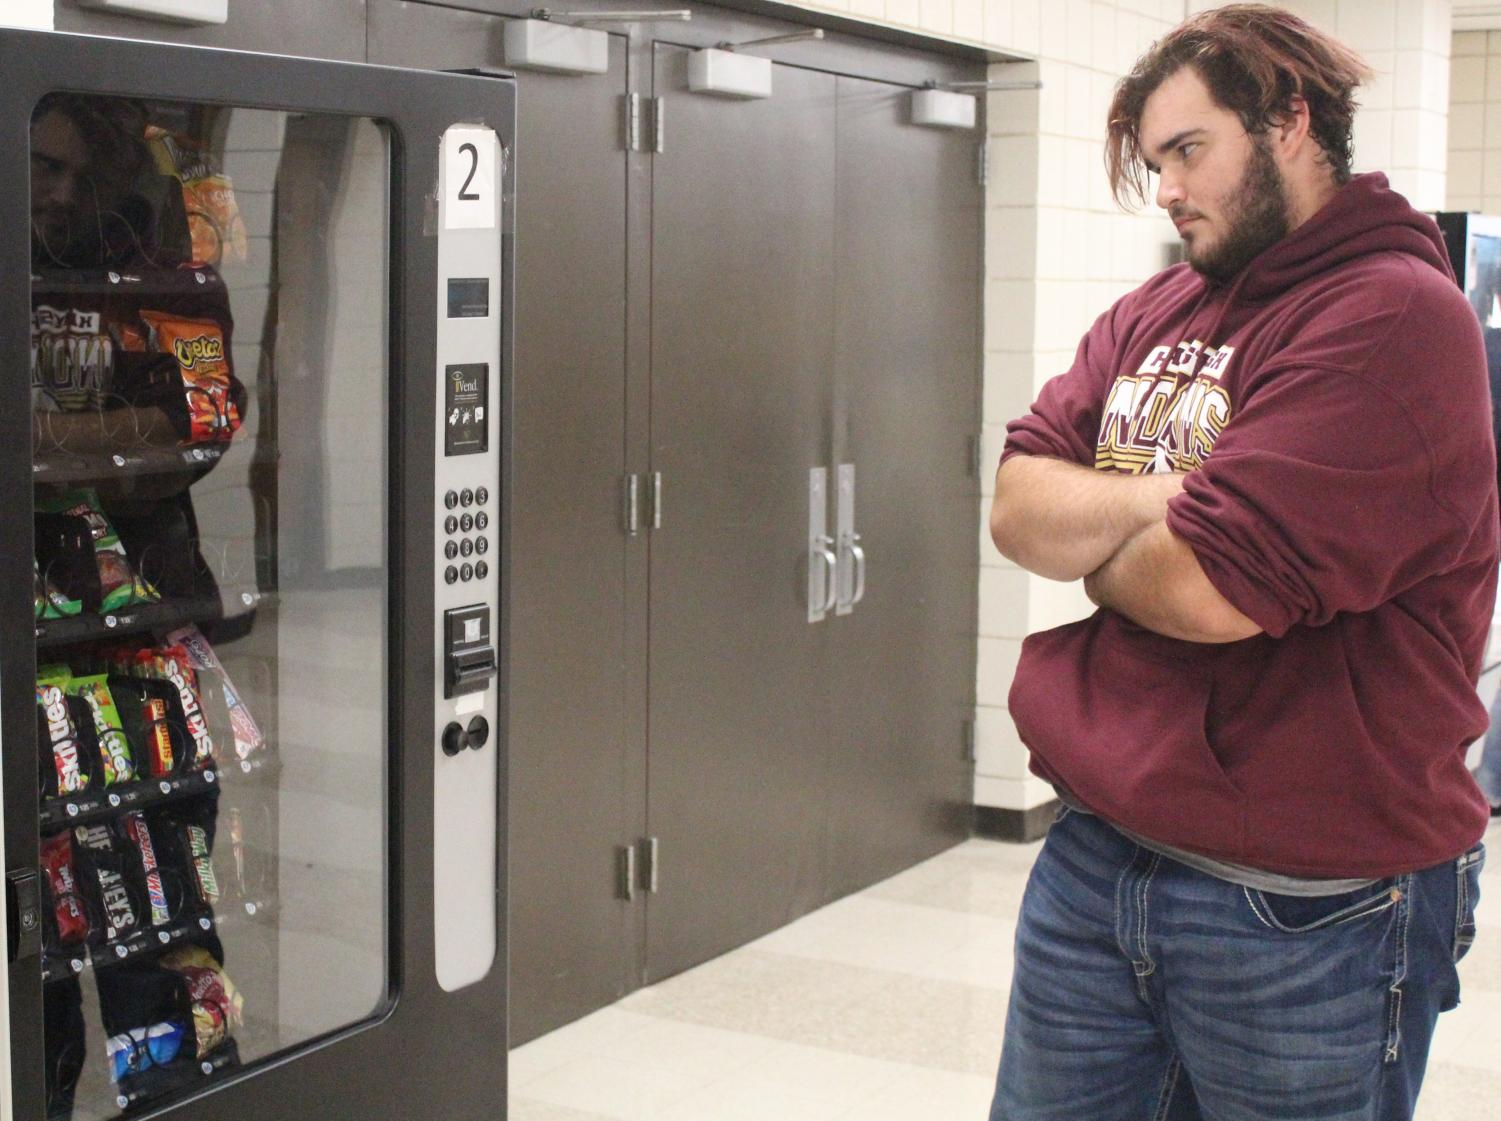 Student is frustrated with the new vending machine rule.